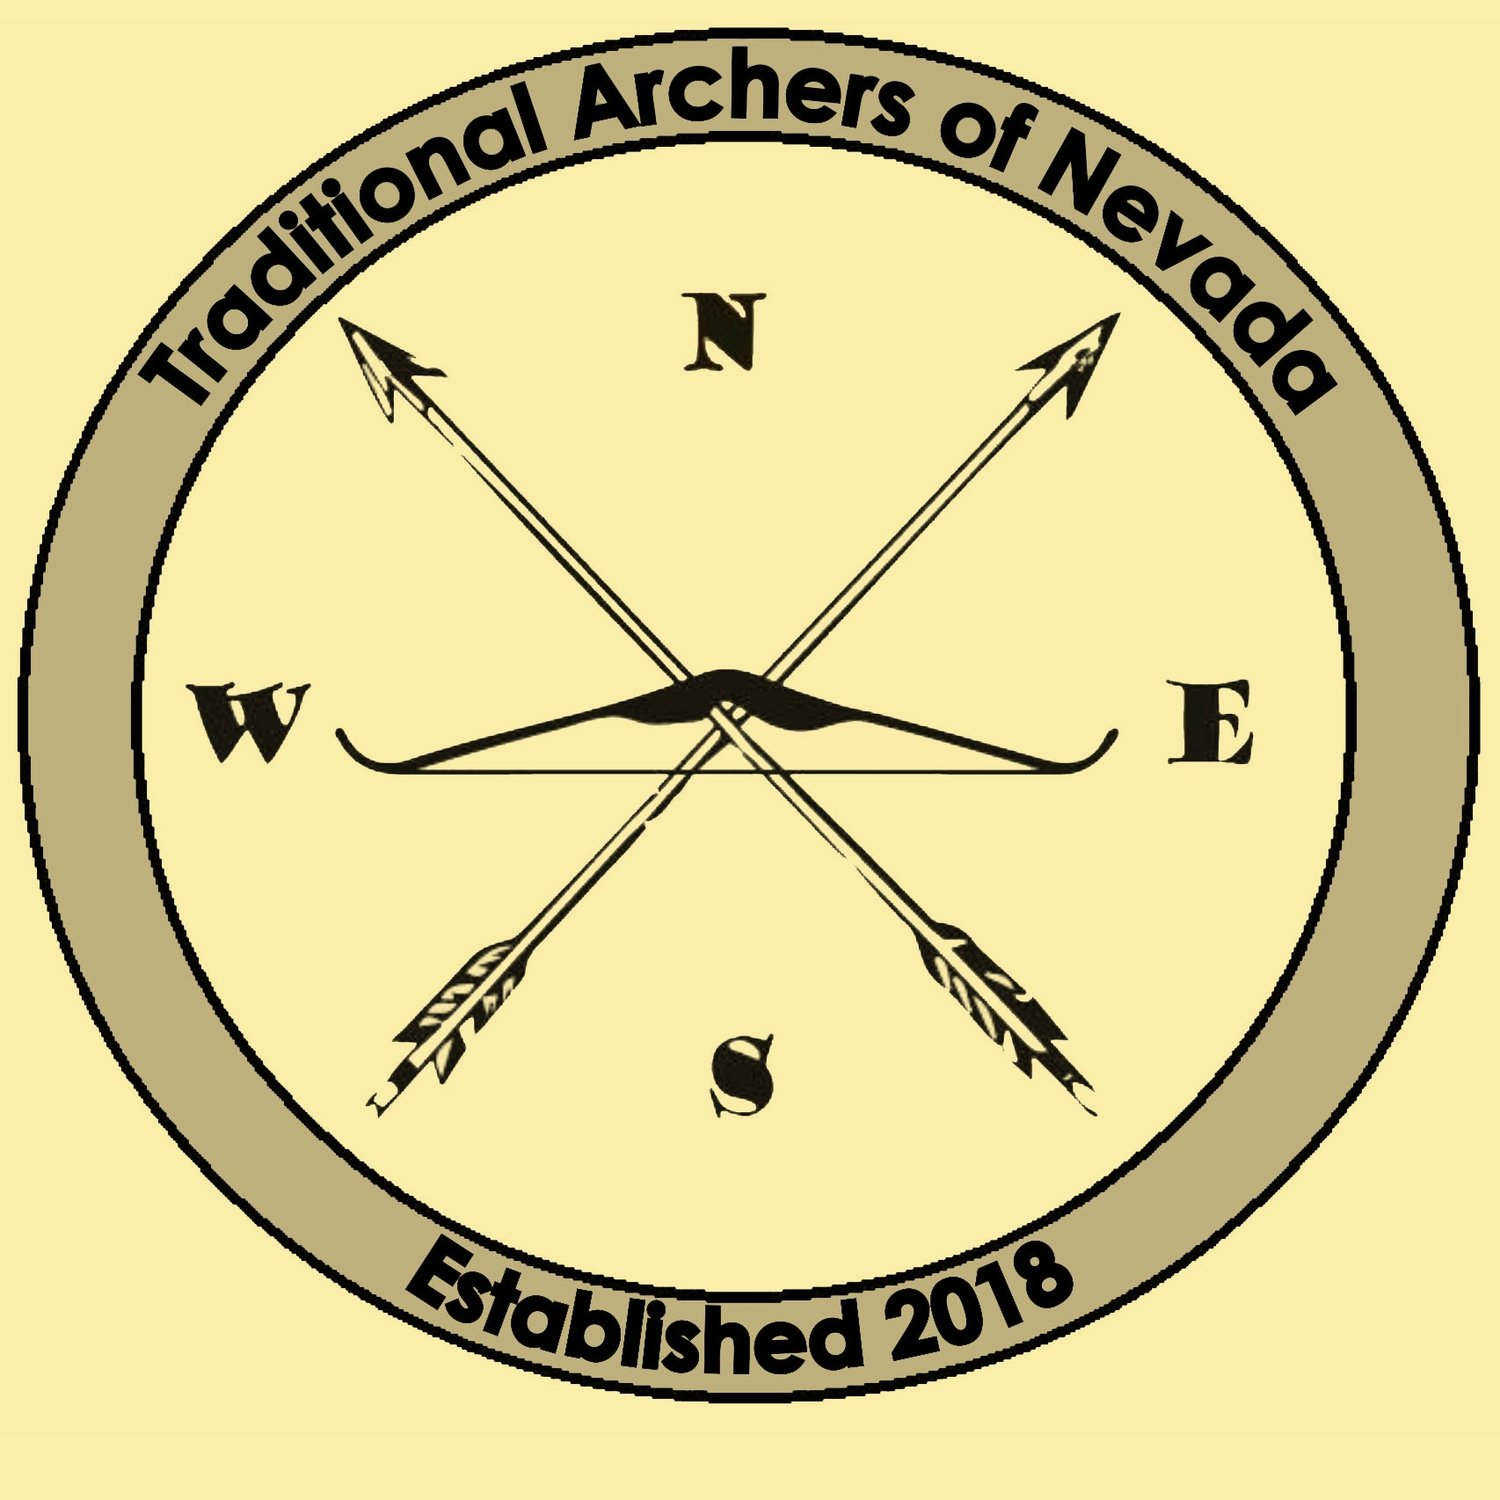 Traditional Archers of Nevada